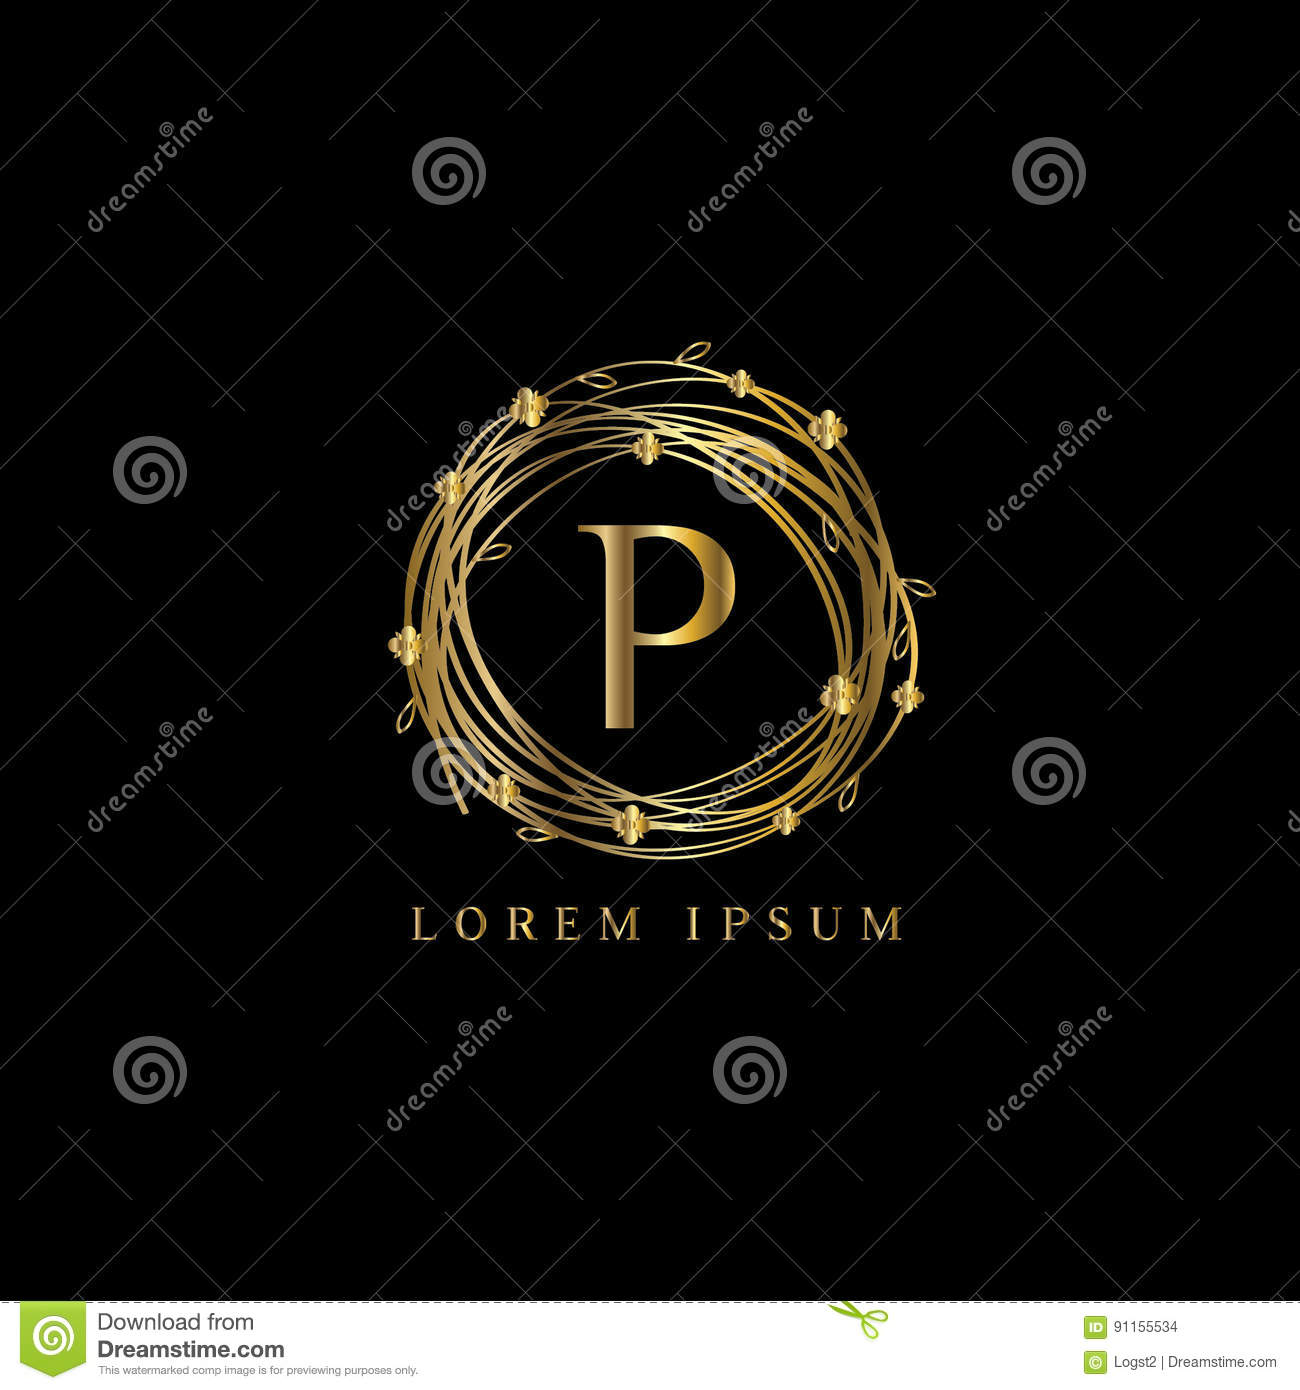 To acquire Stylish p letter logo picture trends